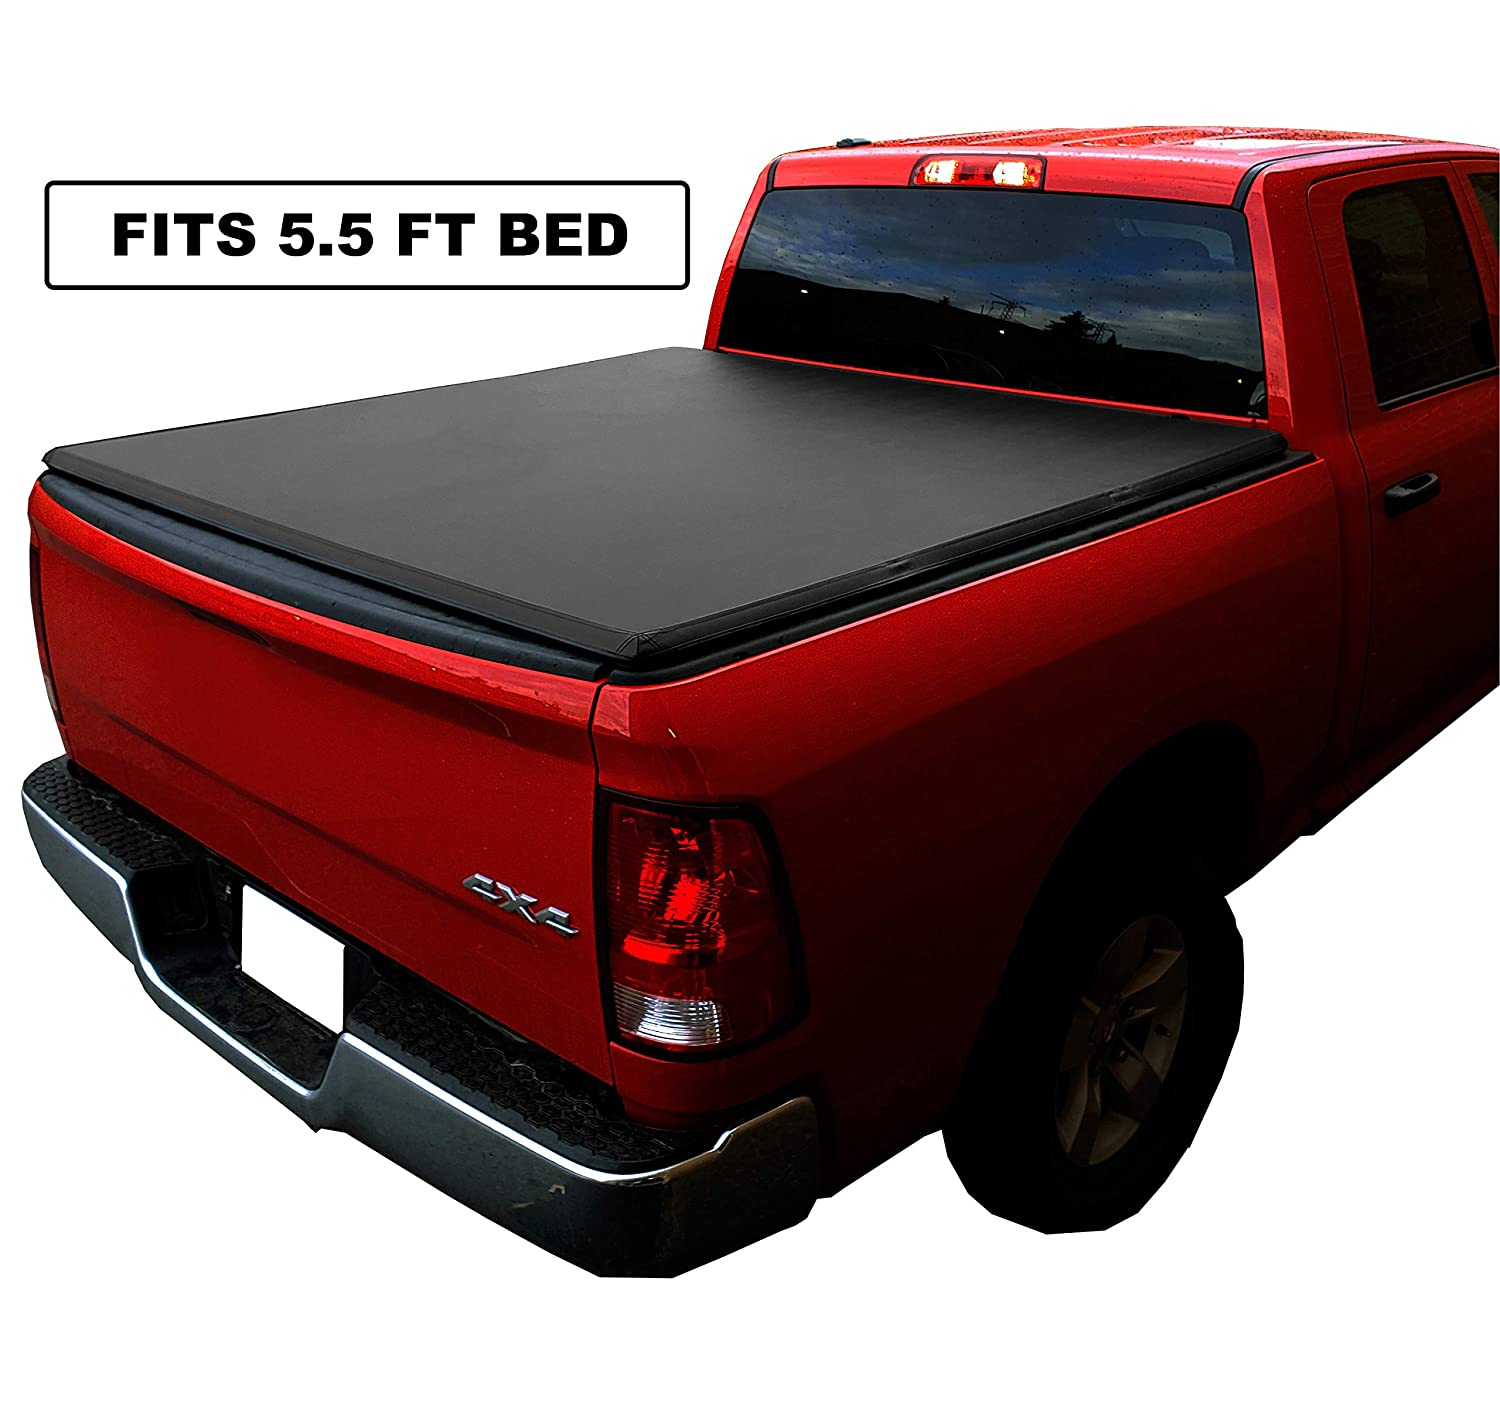 Headliner Magic or Black Lt Tan Lt Tan, No Sunroof Mazda 6 Auto Headliner Foam Backing Lt Gray